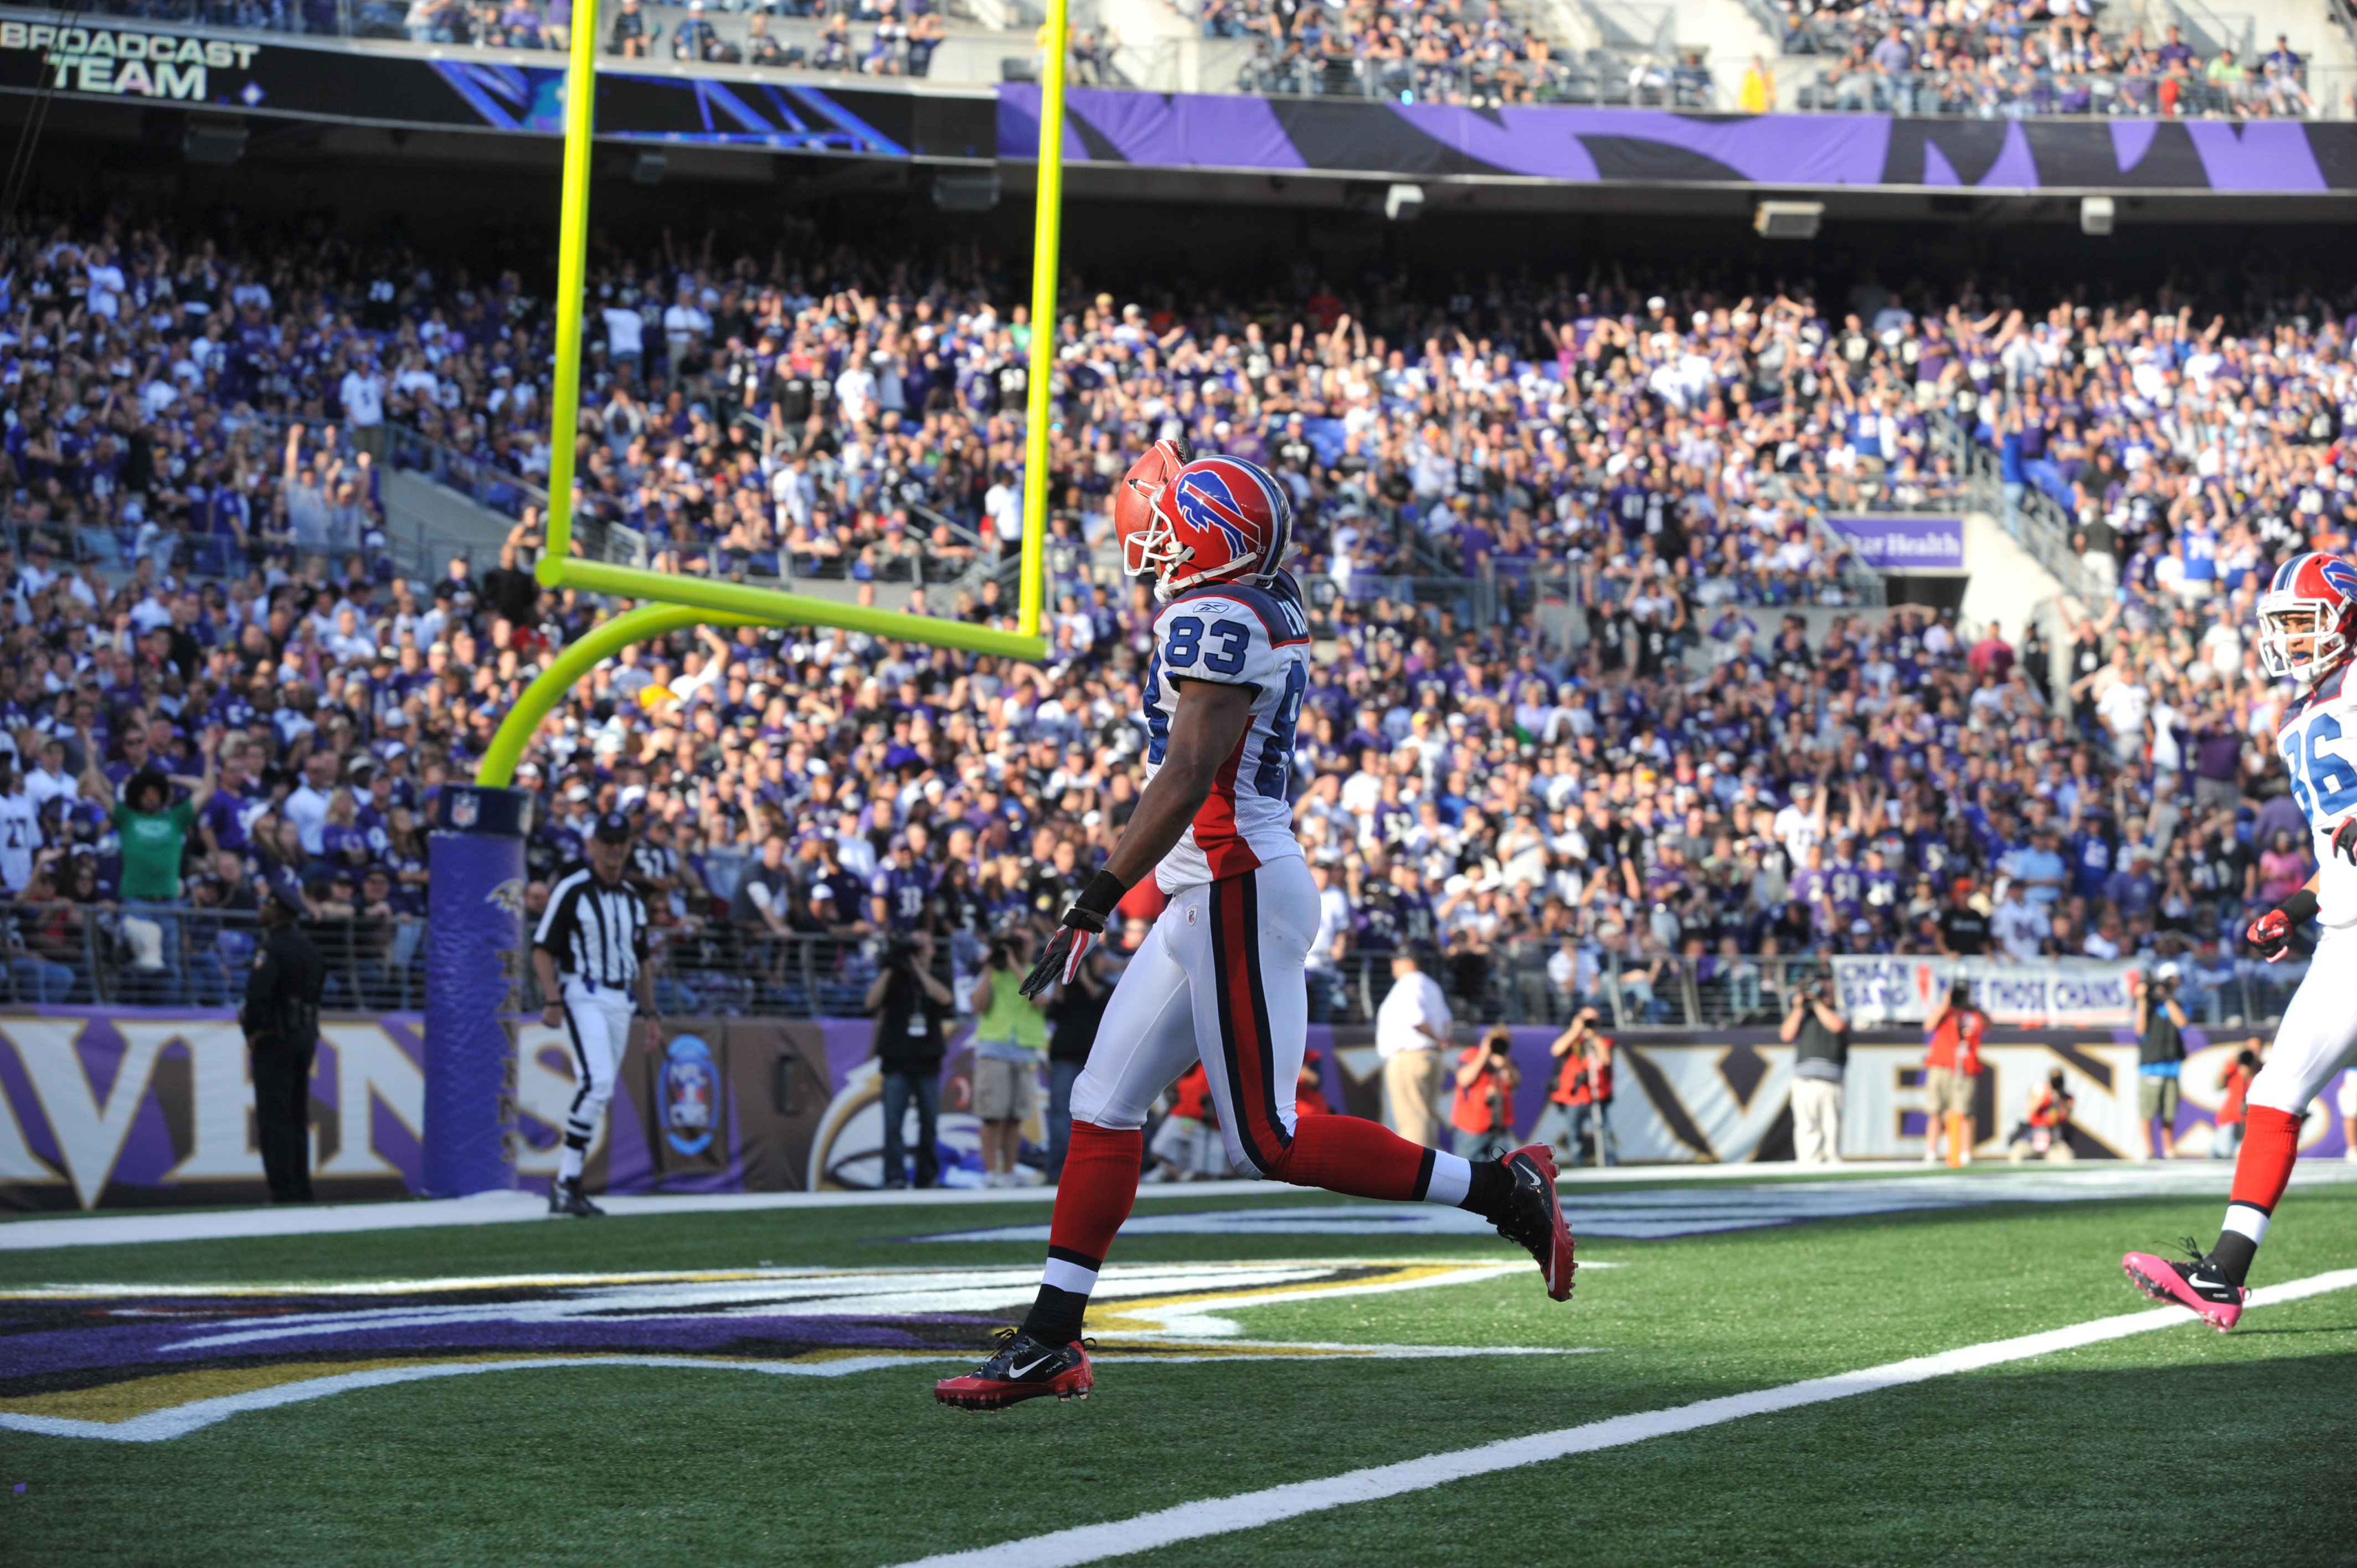 BALTIMORE, MD - OCTOBER 24:  Lee Evans #83 of the Buffalo Bills scores his third touchdown against the Baltimore Ravens at M&T Bank Stadium on October 24, 2010 in Baltimore, Maryland. The Ravens defeated the Bills 37-34. (Photo by Larry French/Getty Image